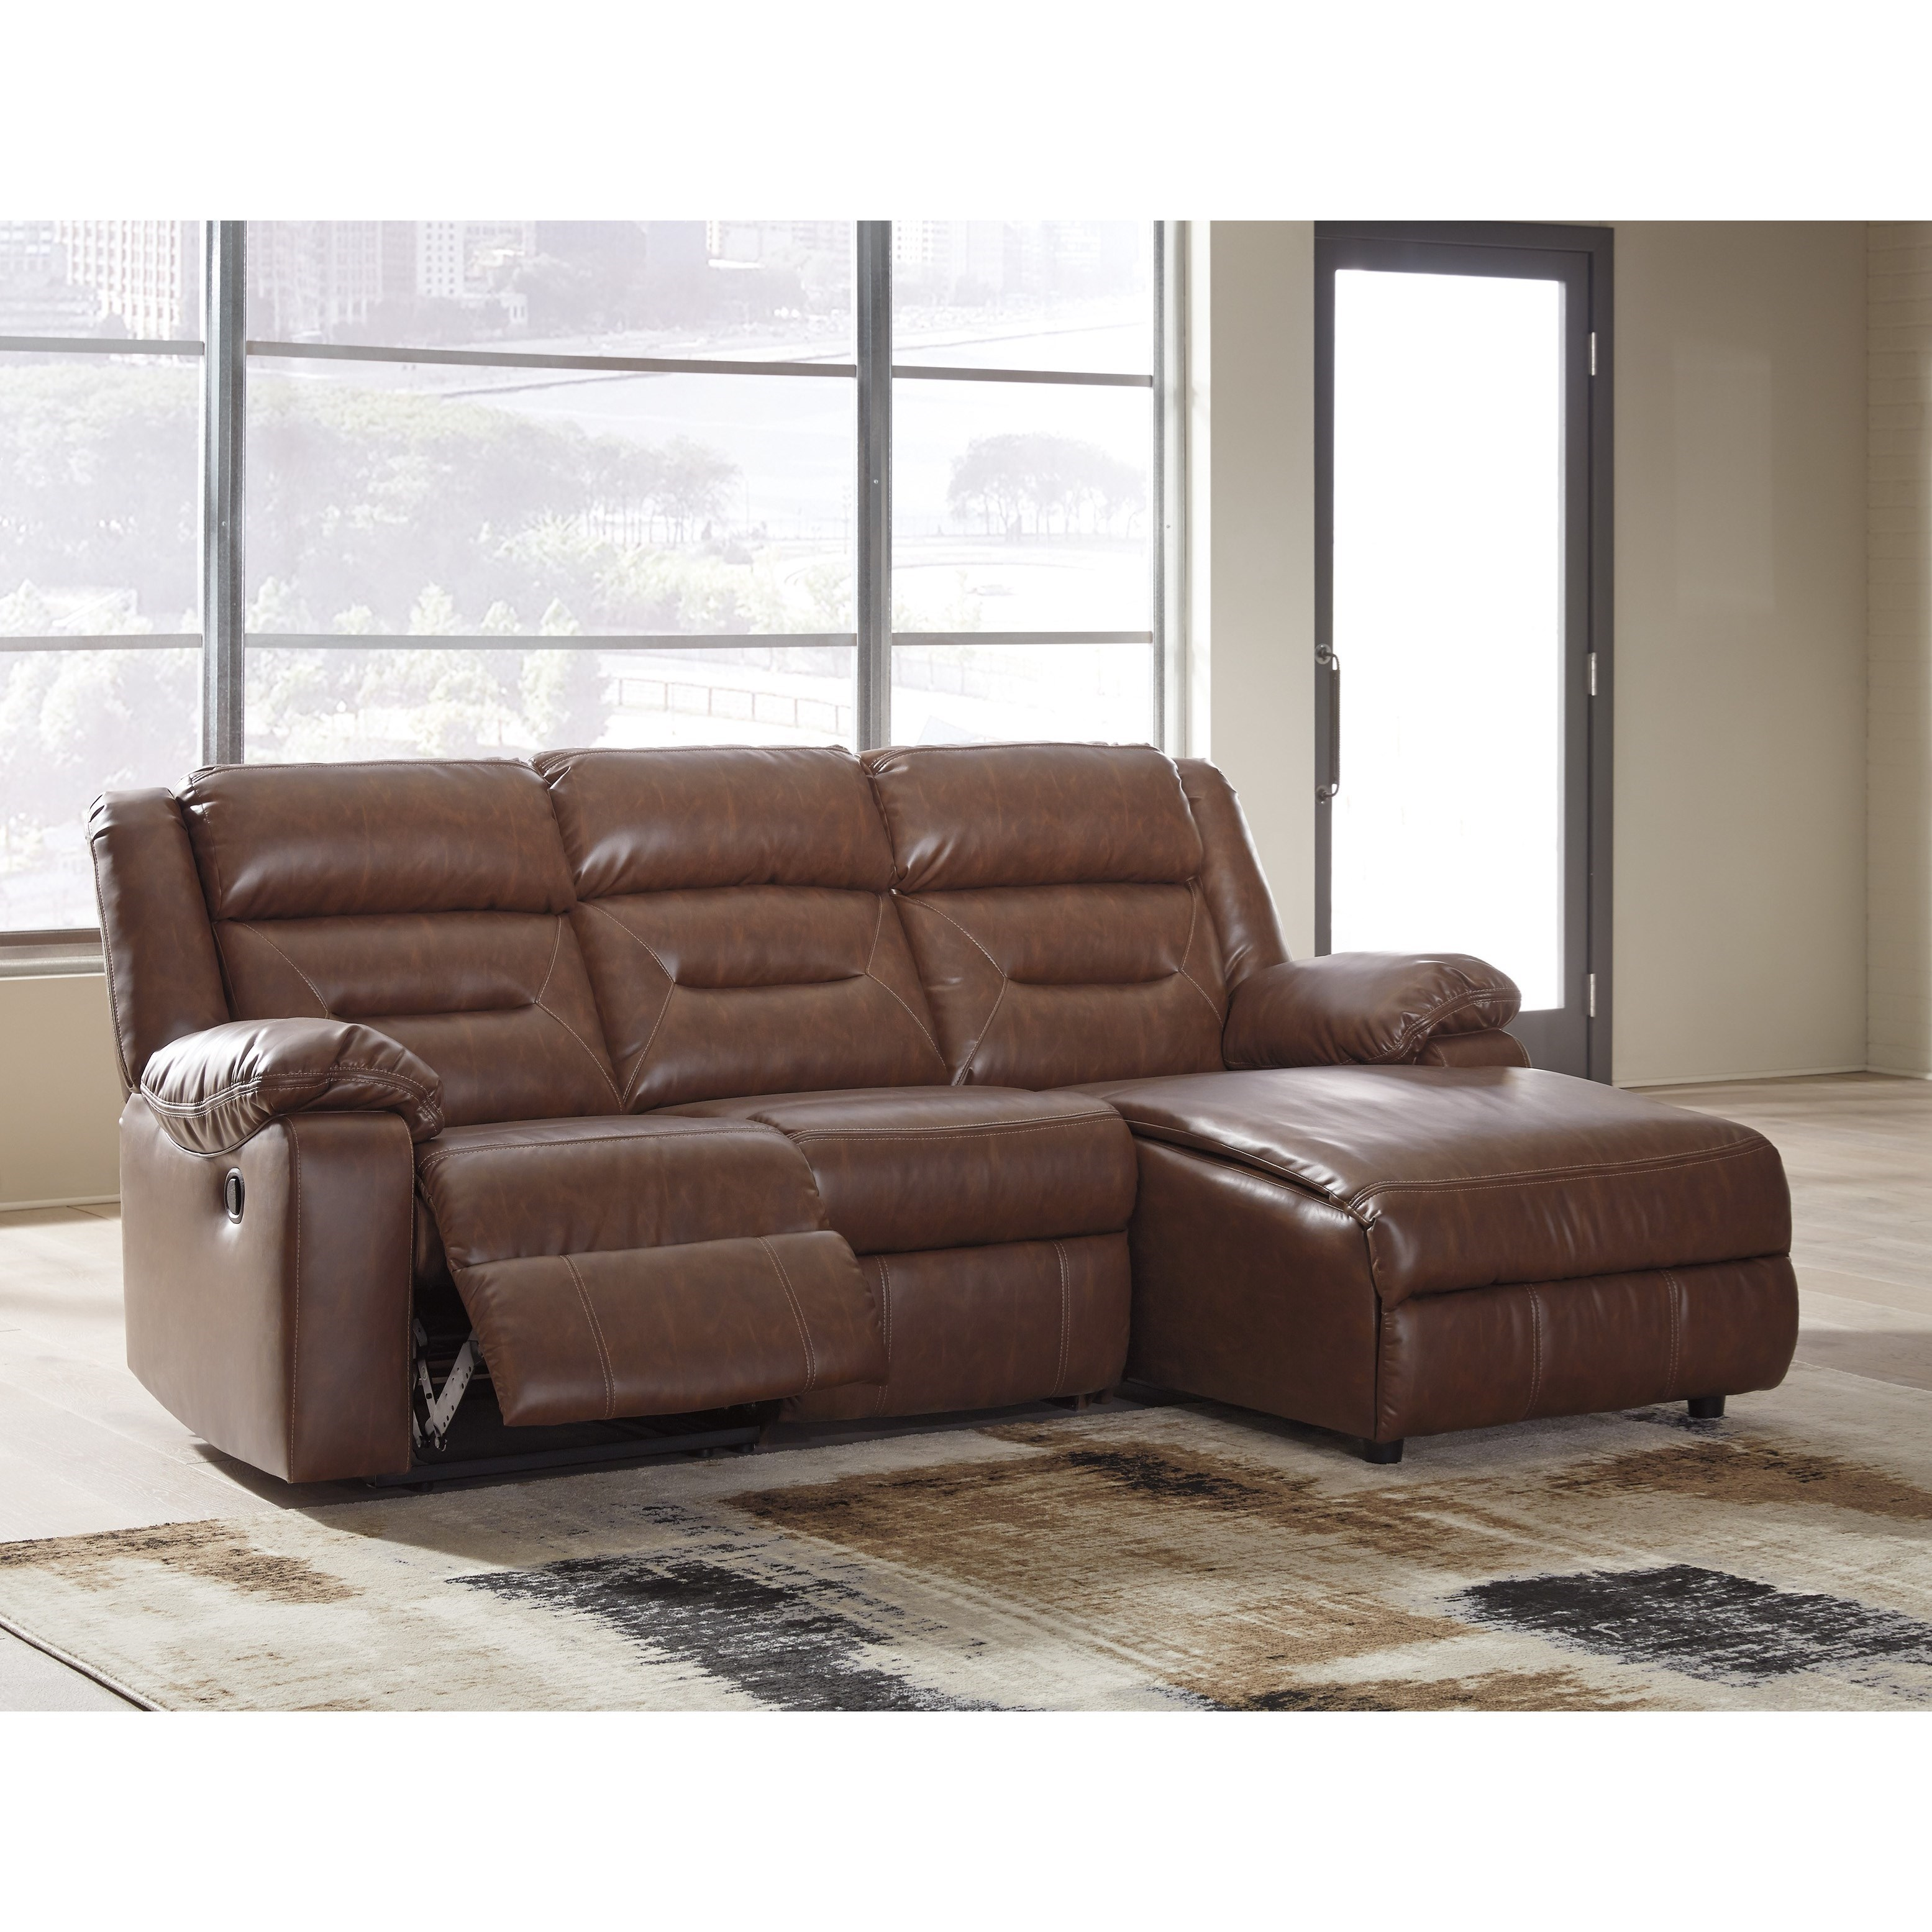 Delicieux Household Furniture